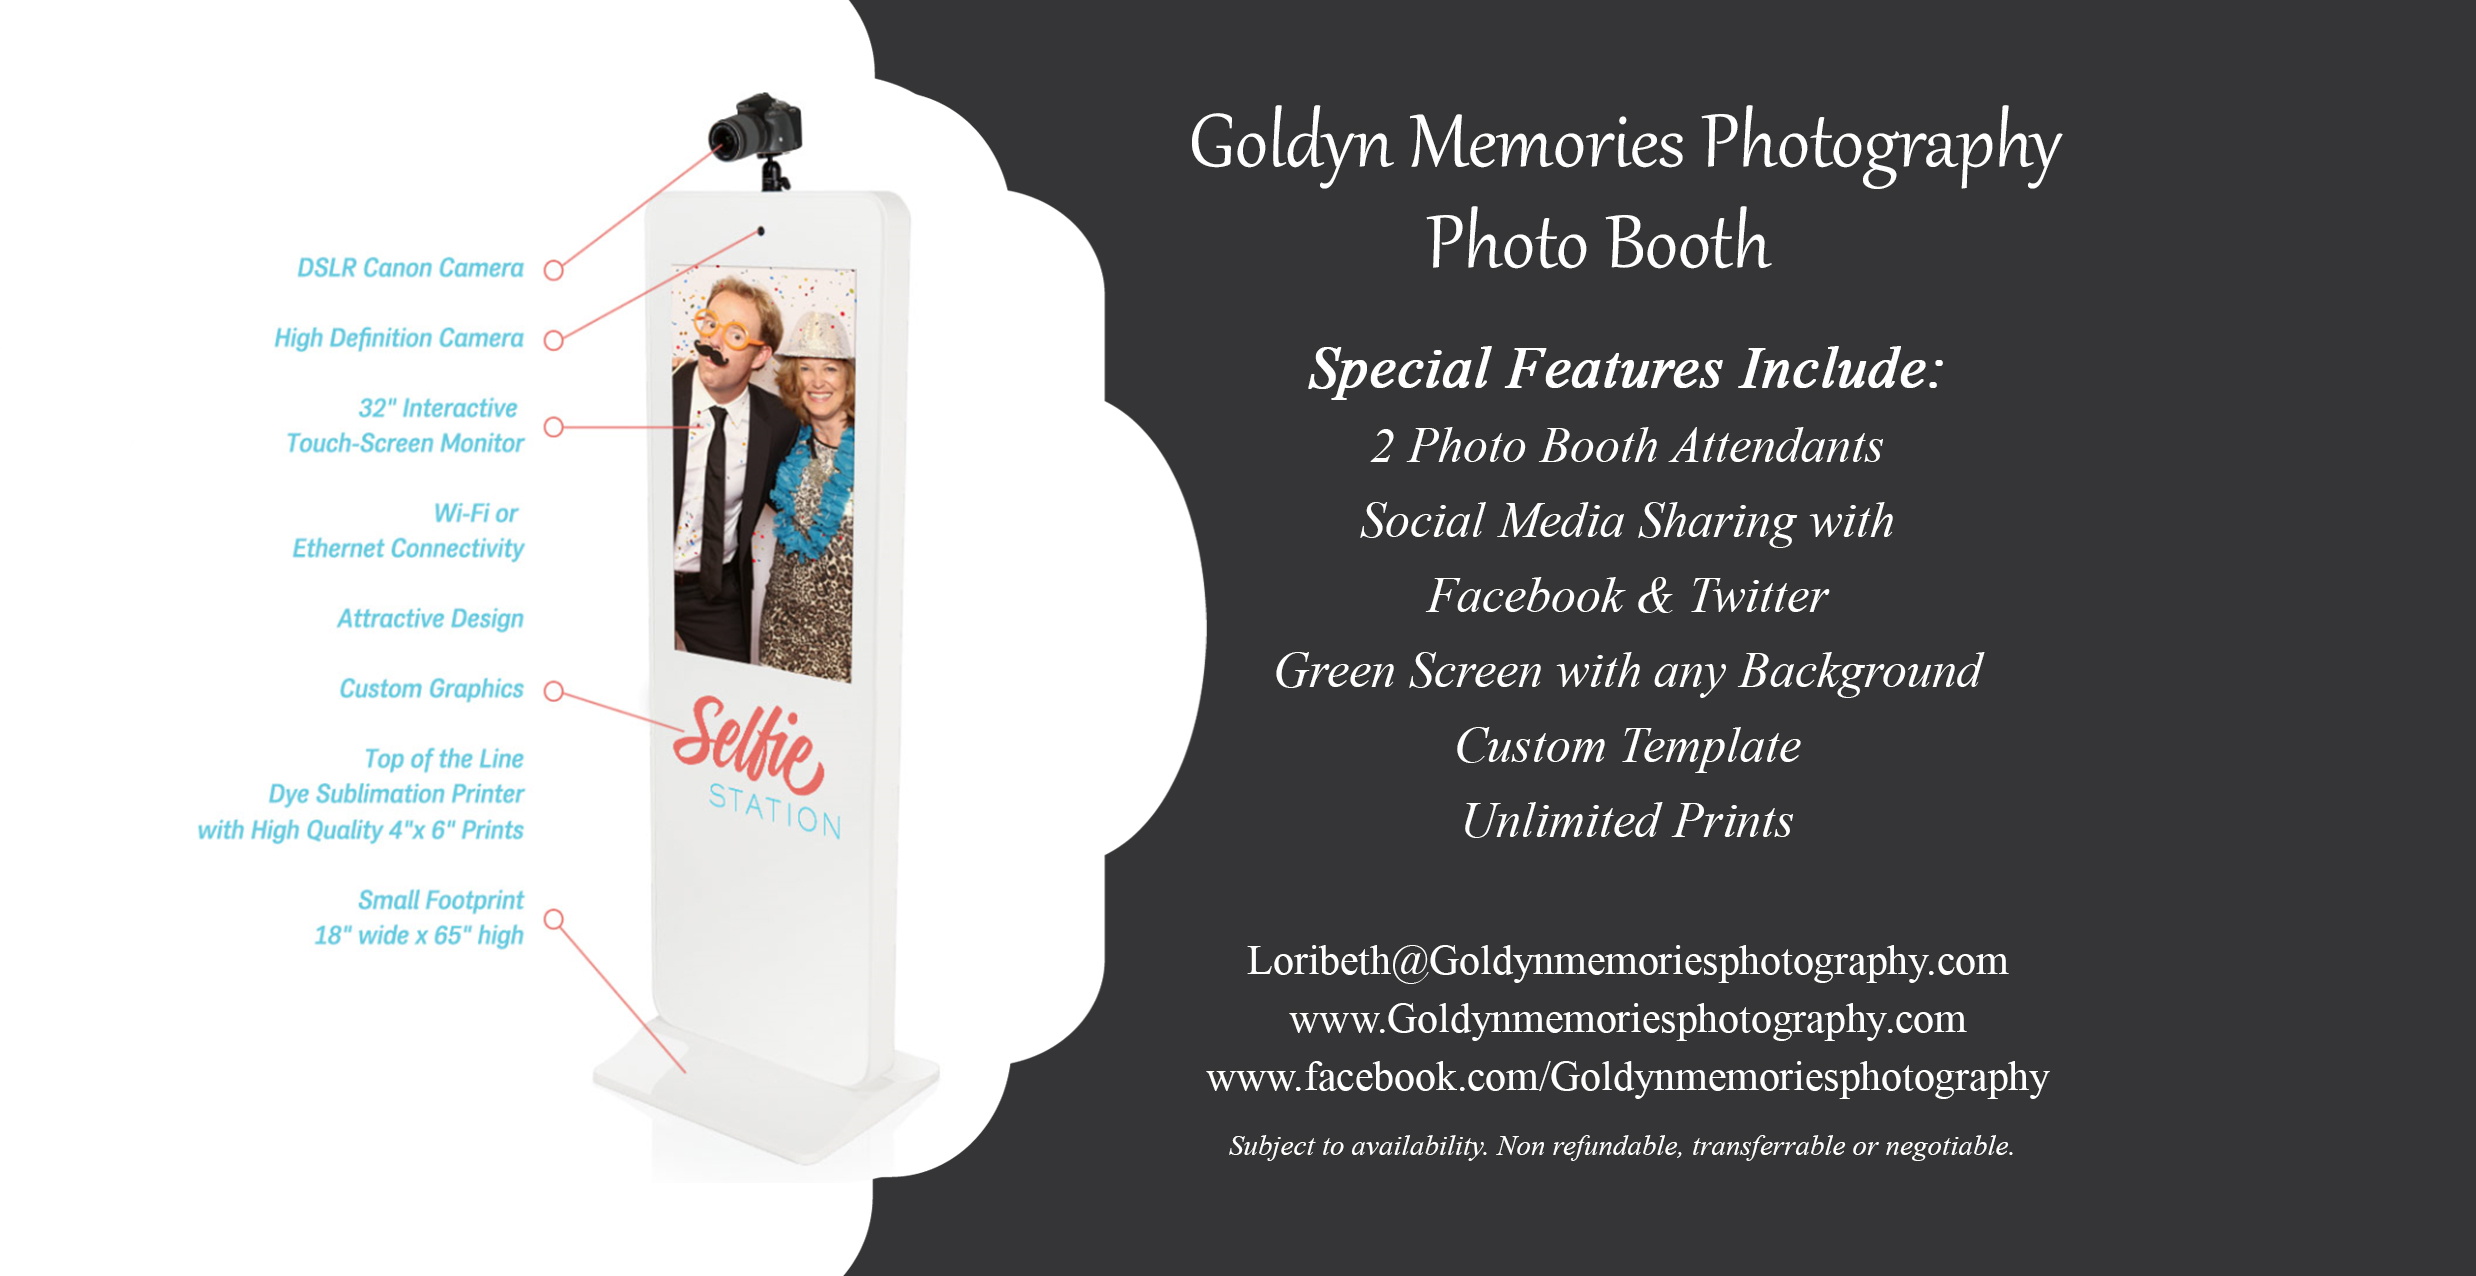 4x8 for Selfie Station Info (No Price)